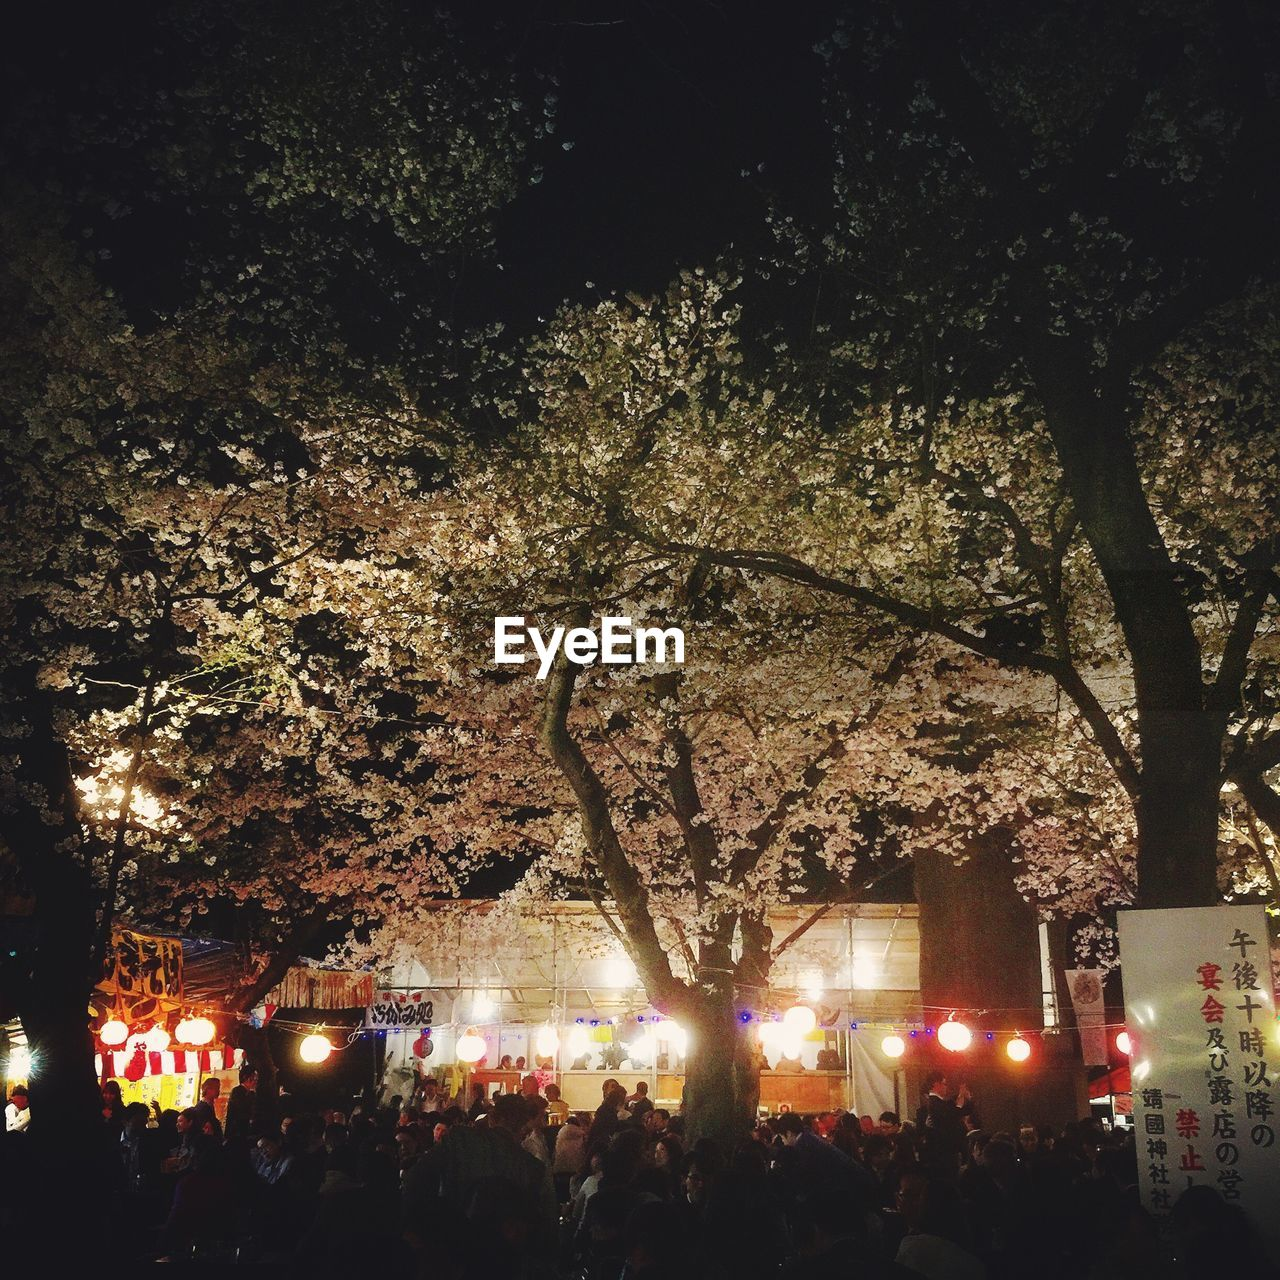 tree, night, illuminated, large group of people, real people, celebration, arts culture and entertainment, men, outdoors, crowd, enjoyment, branch, women, nightlife, photographing, togetherness, popular music concert, nature, people